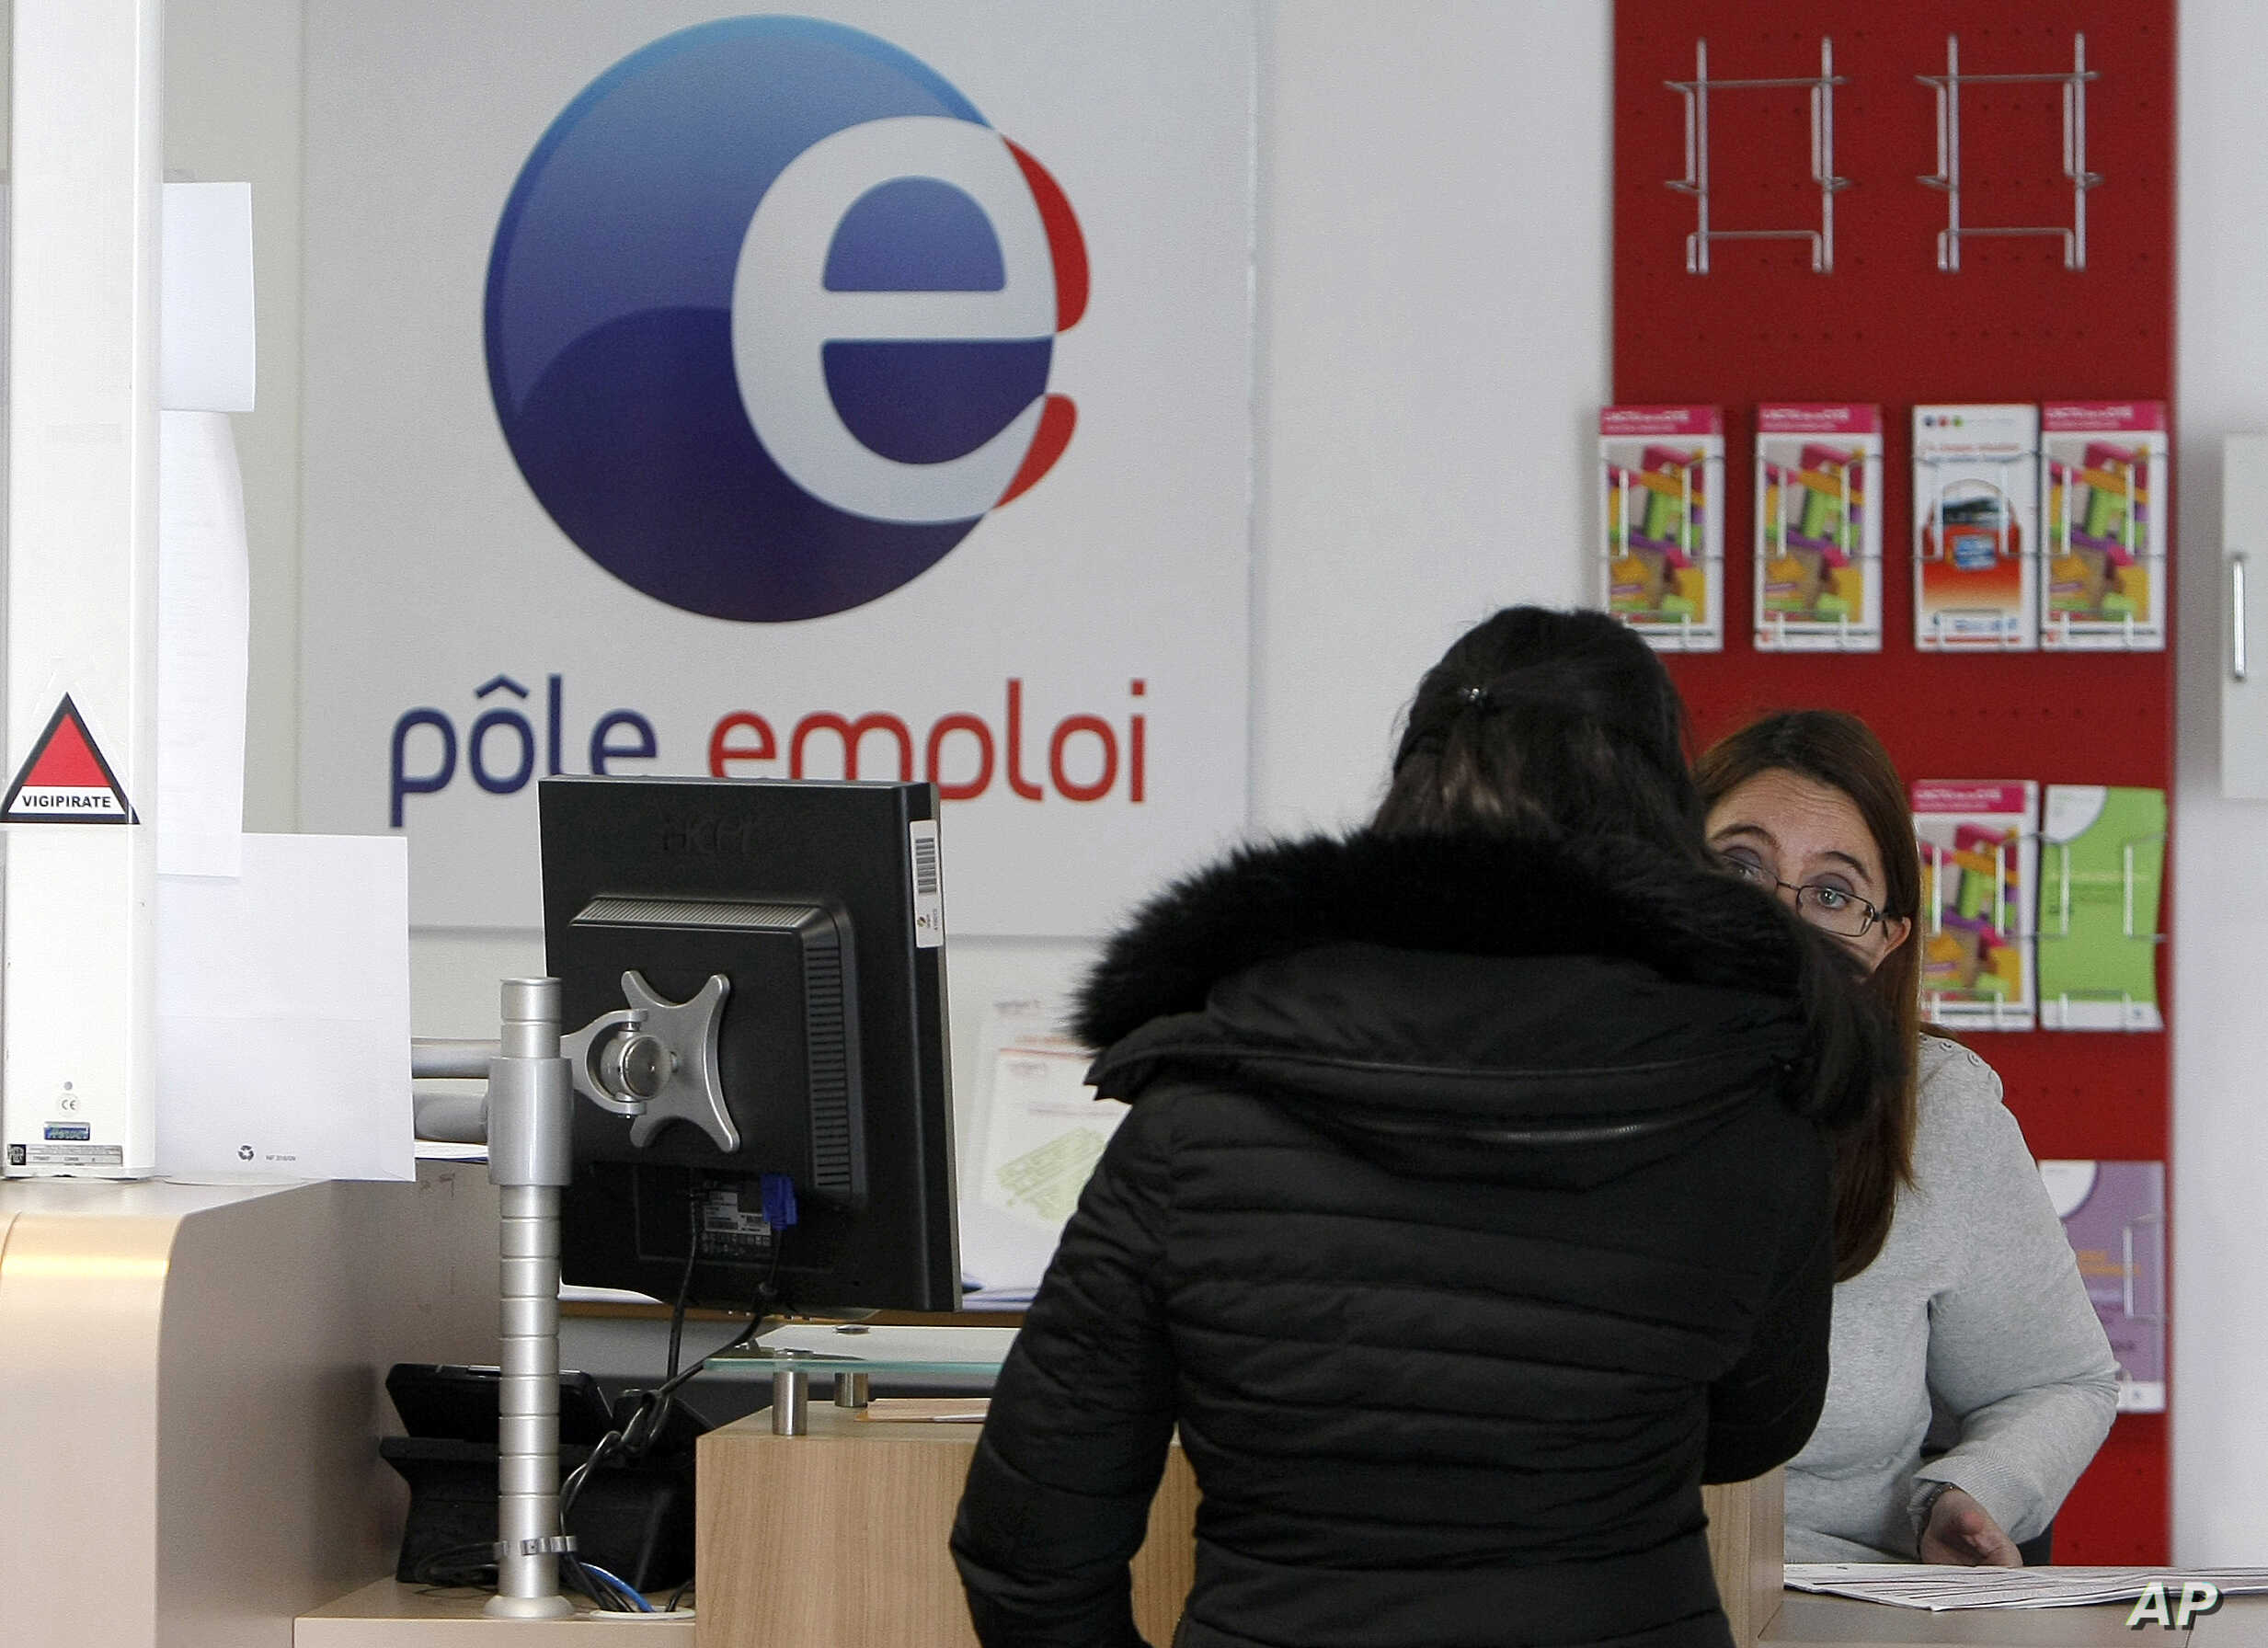 A job seeker speaks to a clerk at an Employment Center in Marseille, southern France, Feb. 24, 2015.  Record-high unemployment started dragging French President Francois Hollande's popularity down just a few months after his election in  2012.